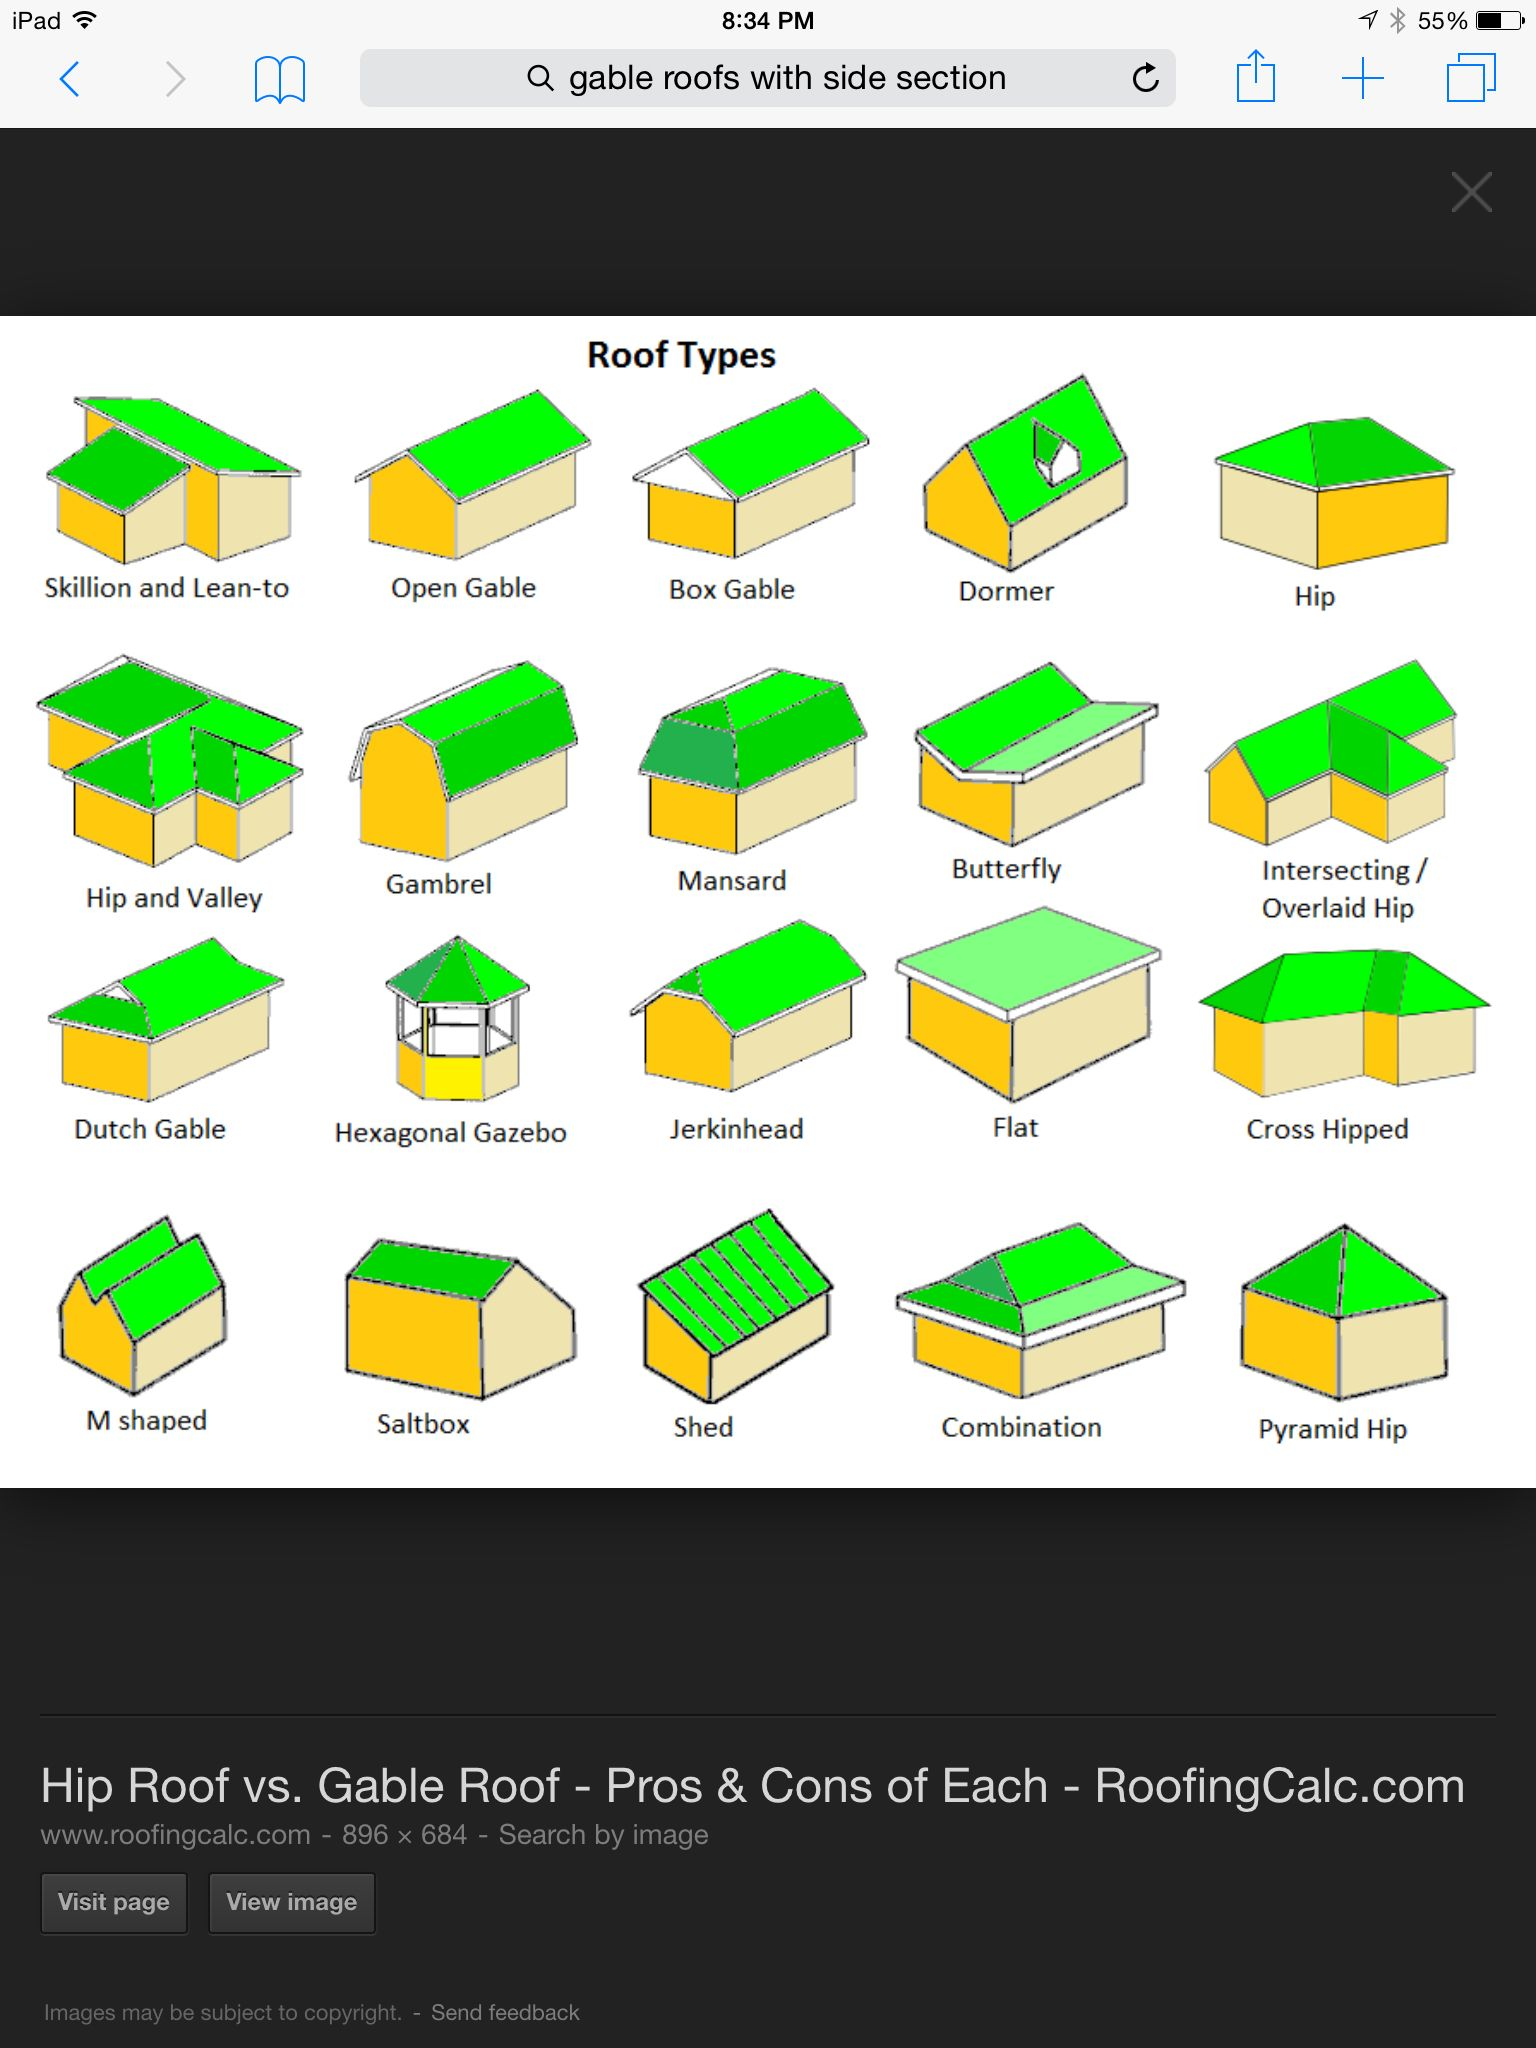 Pin By Mary Jo Wright On Houses Roof Shapes Gable Roof Hip Roof